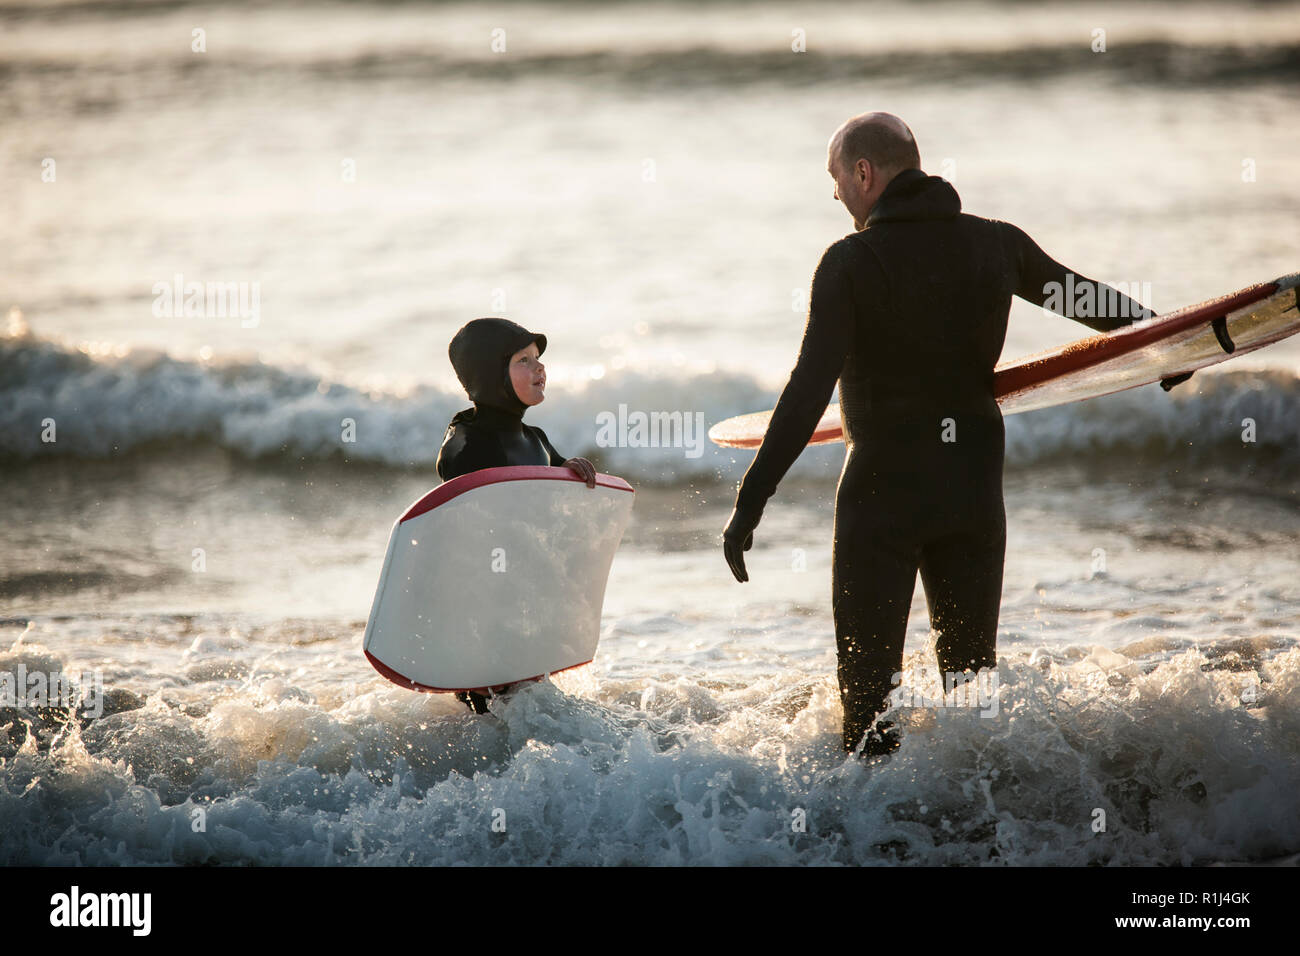 Mid adult man and his young son having a conversation while standing in shallow water holding their boards at the beach. Stock Photo